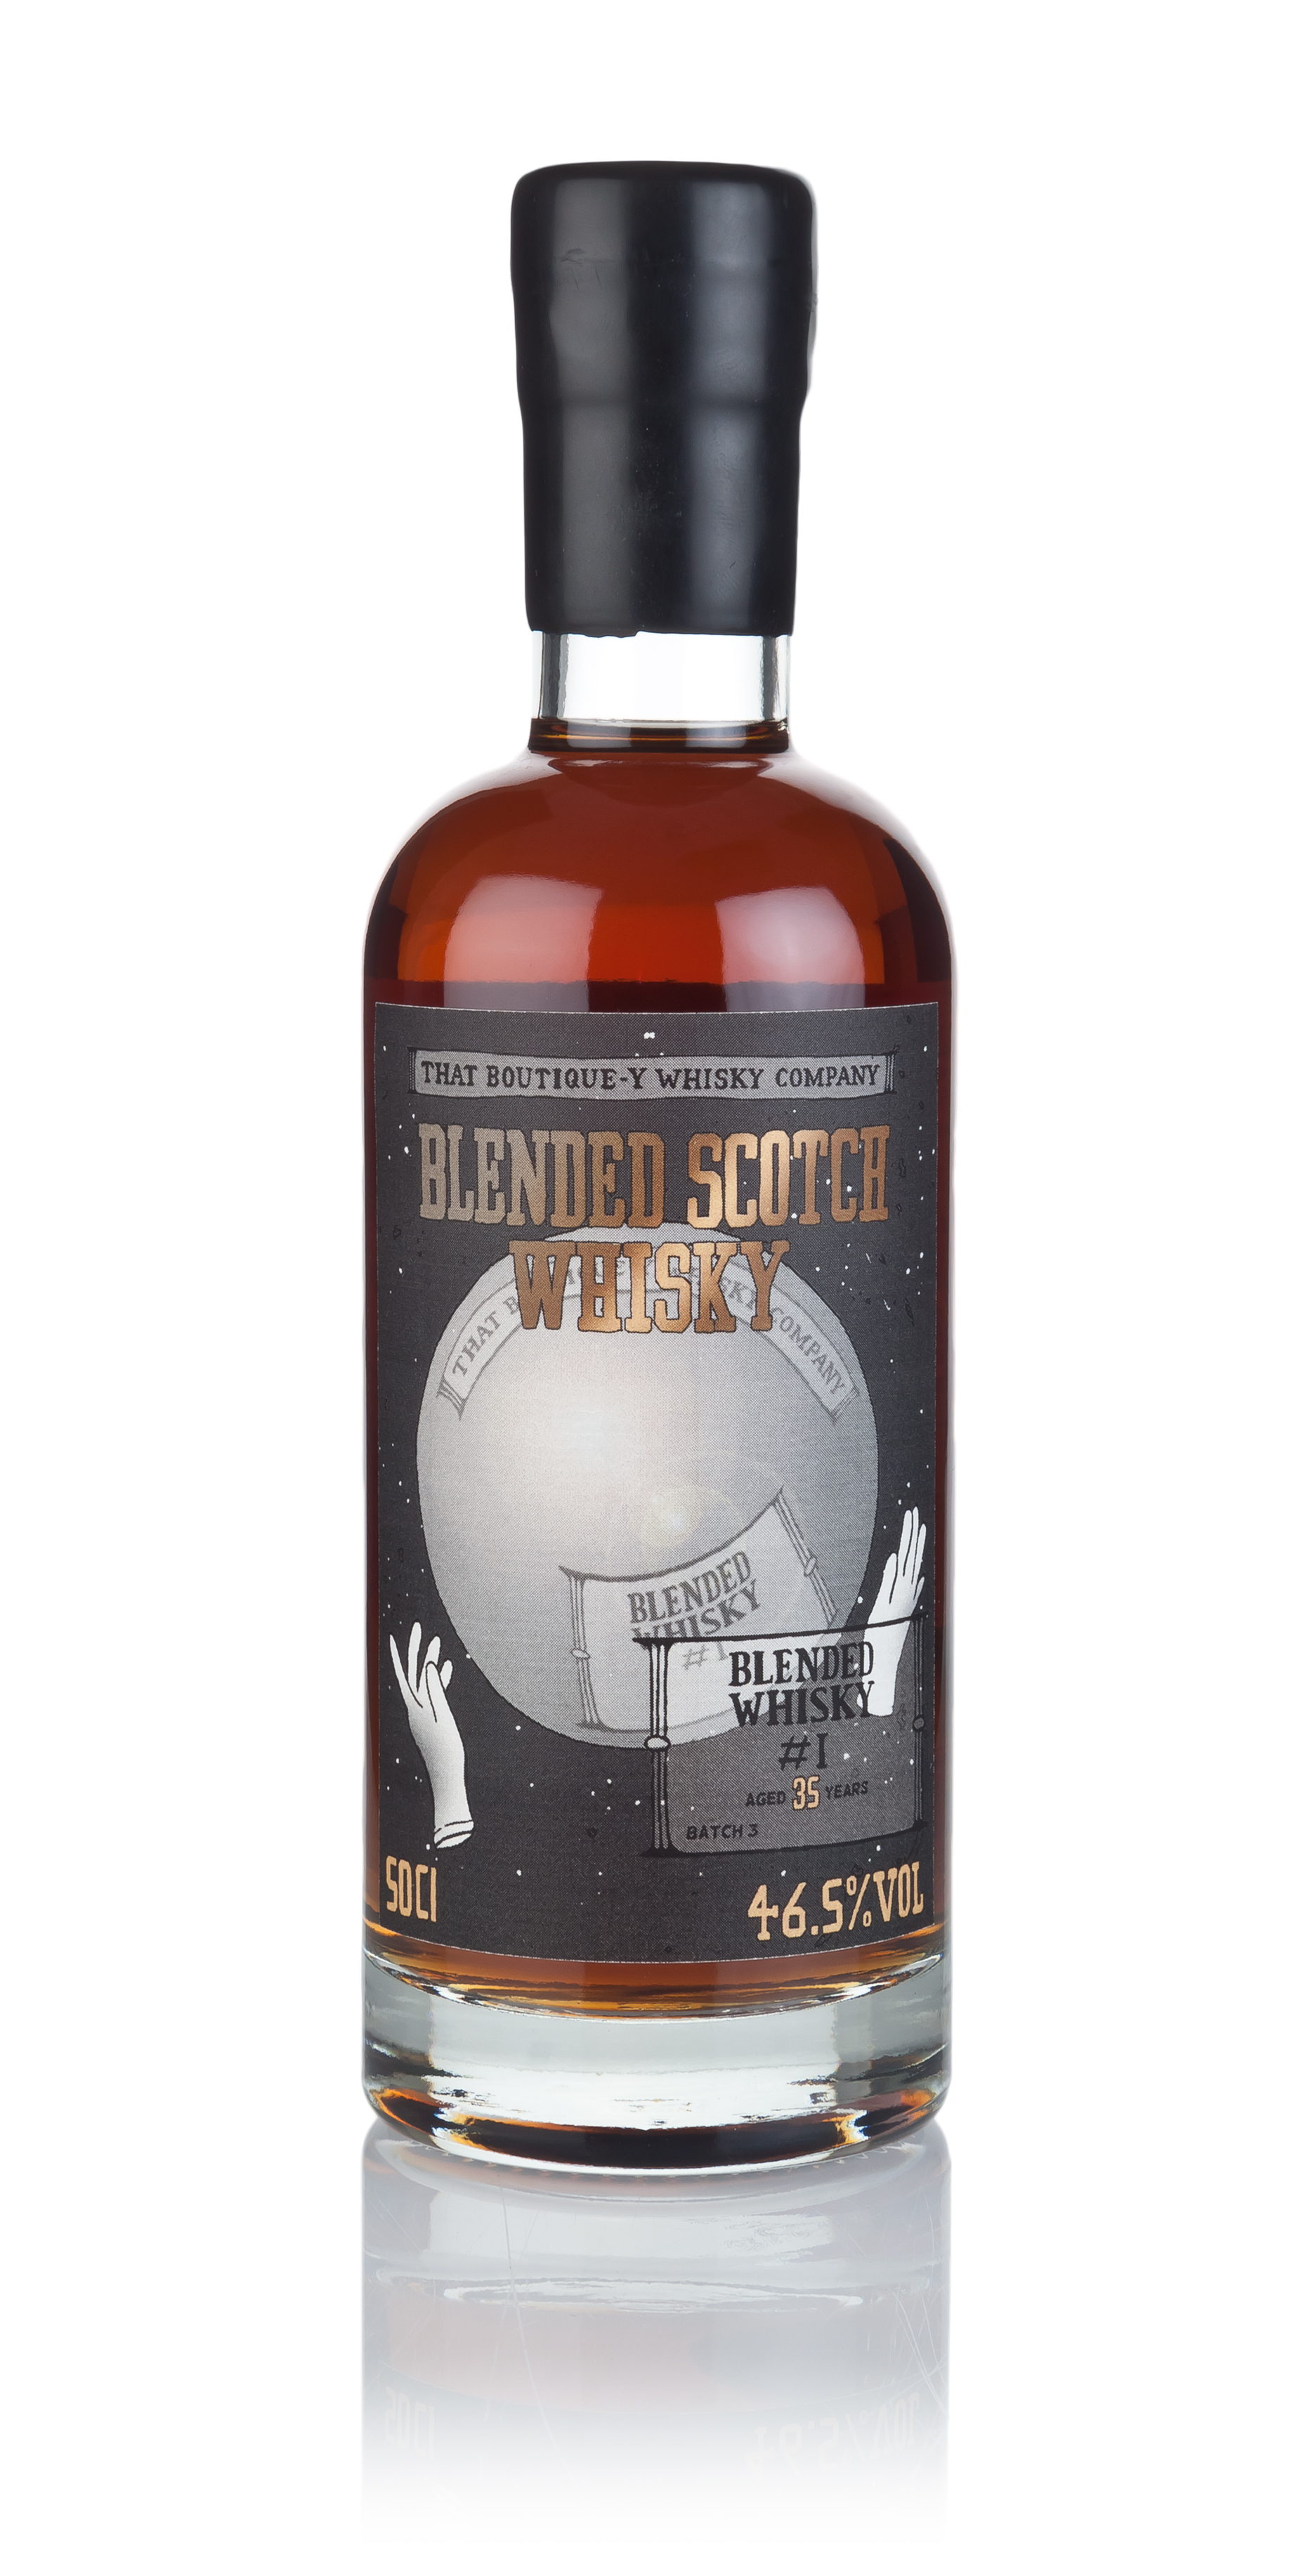 Blended Whisky #1 35 Year Old - Batch 3 (That Boutique-y Whisky Company).jpg